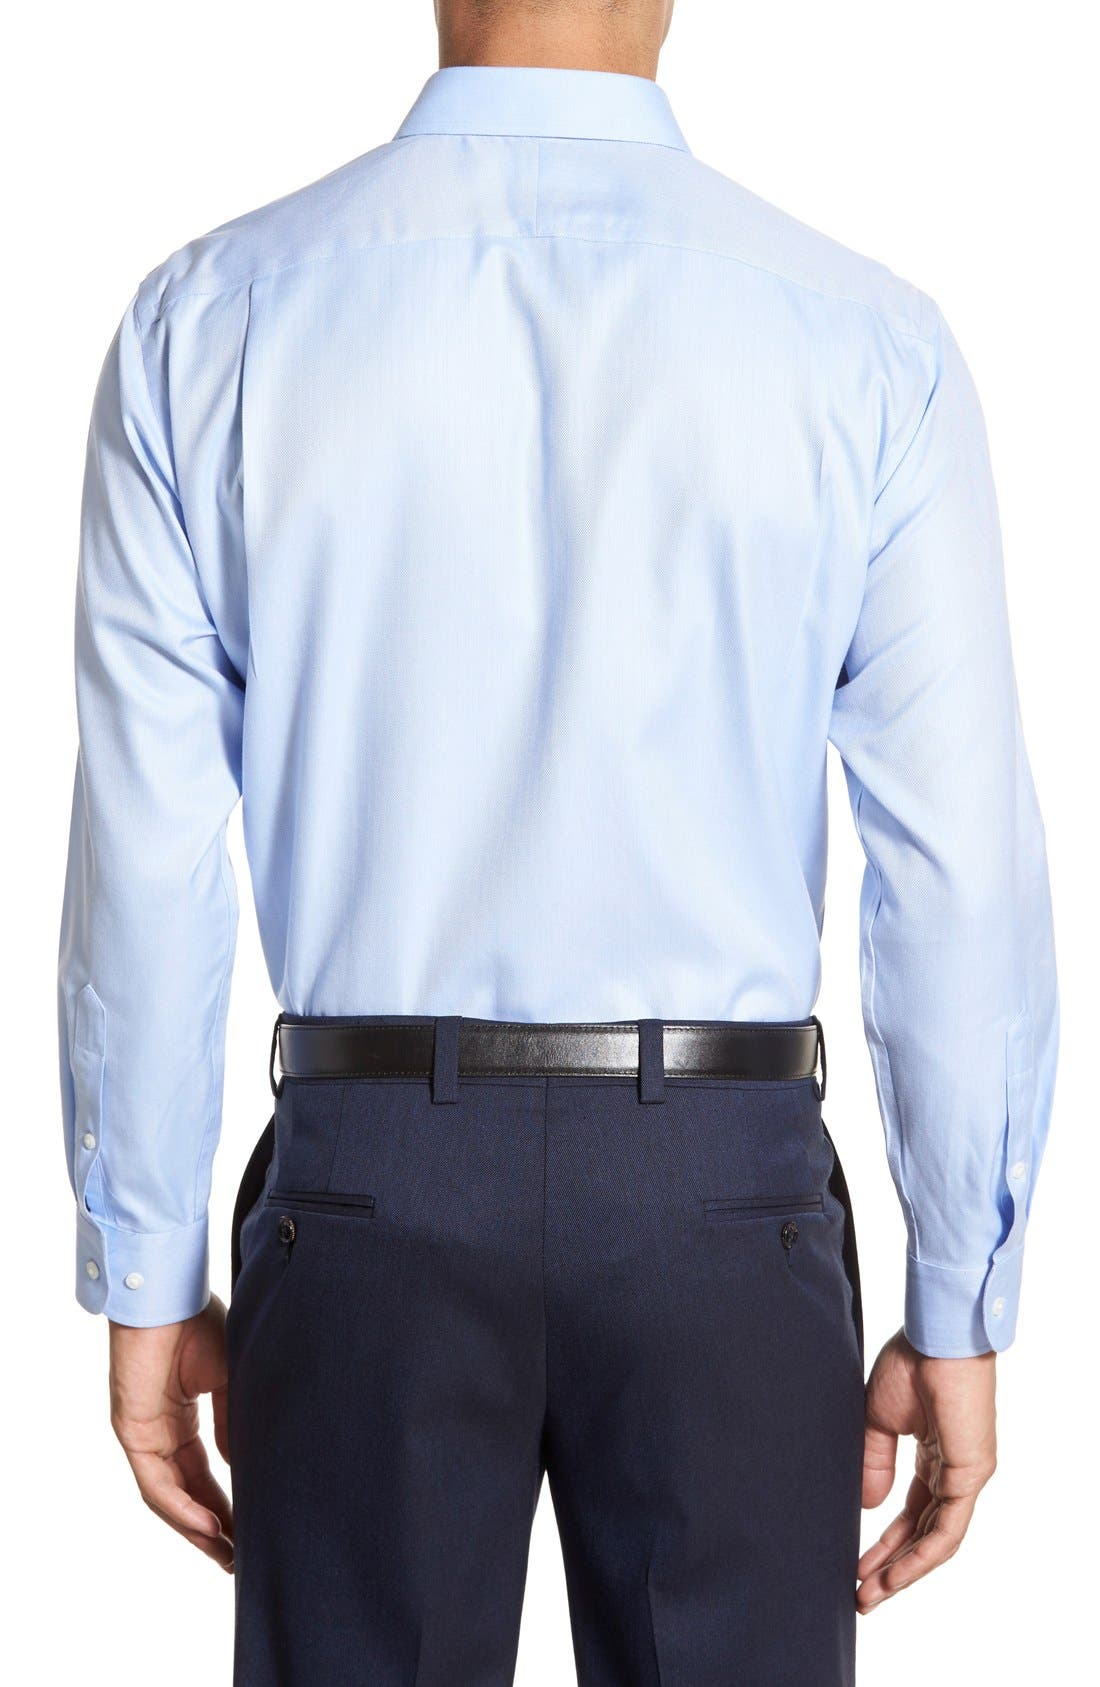 Smartcare<sup>™</sup> Trim Fit Herringbone Dress Shirt,                             Alternate thumbnail 2, color,                             Blue